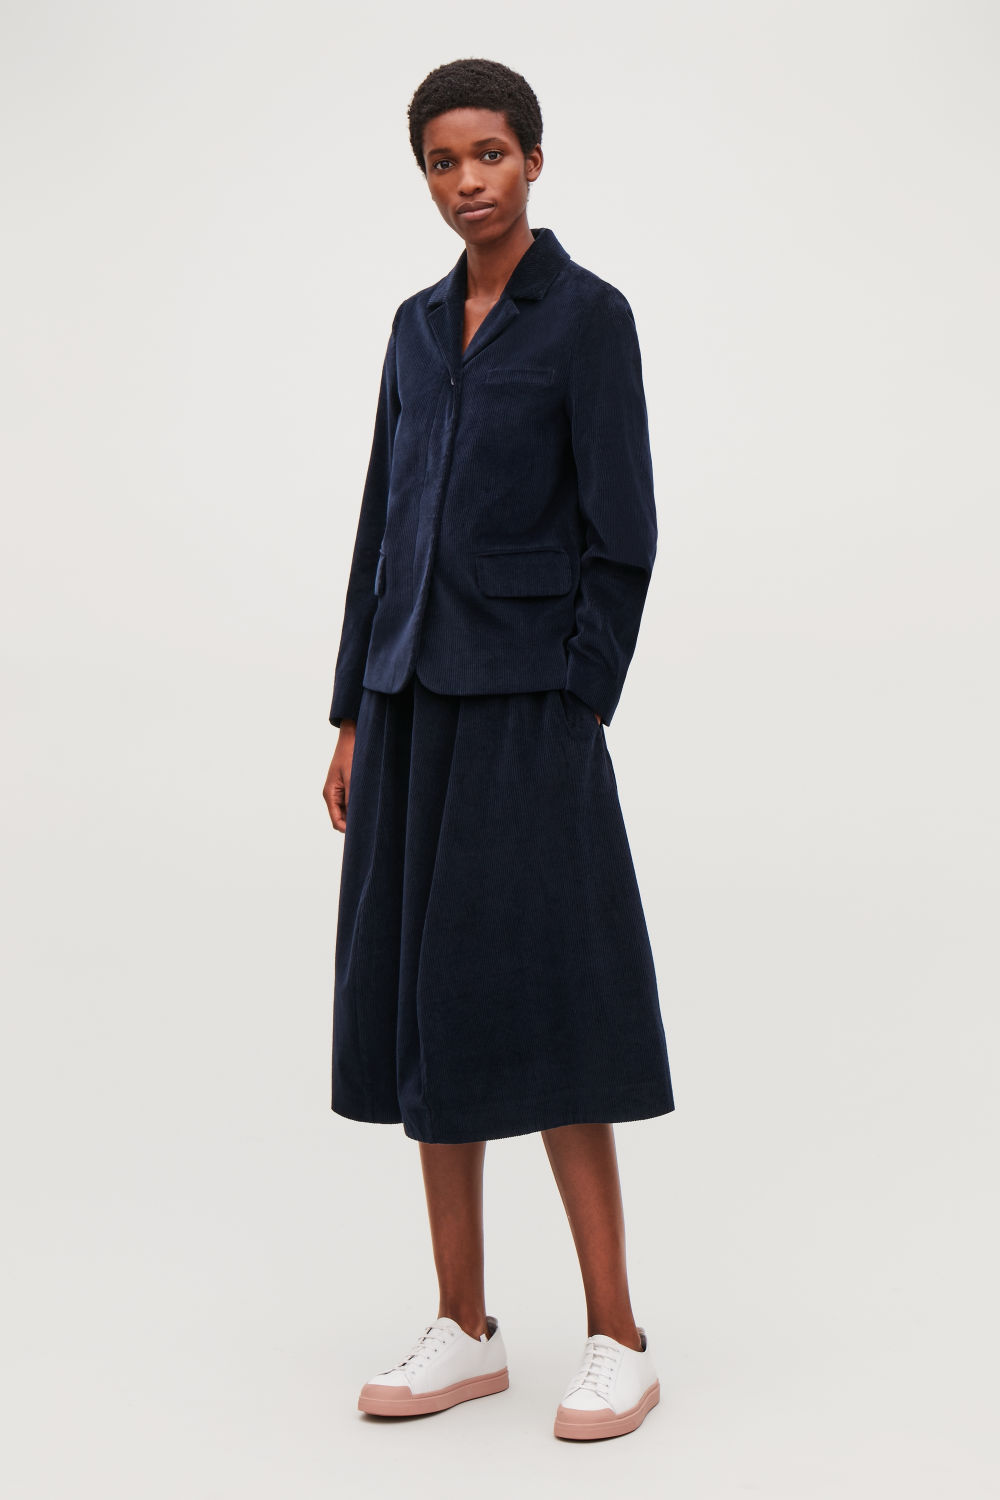 PANELLED A-LINE CORDUROY SKIRT